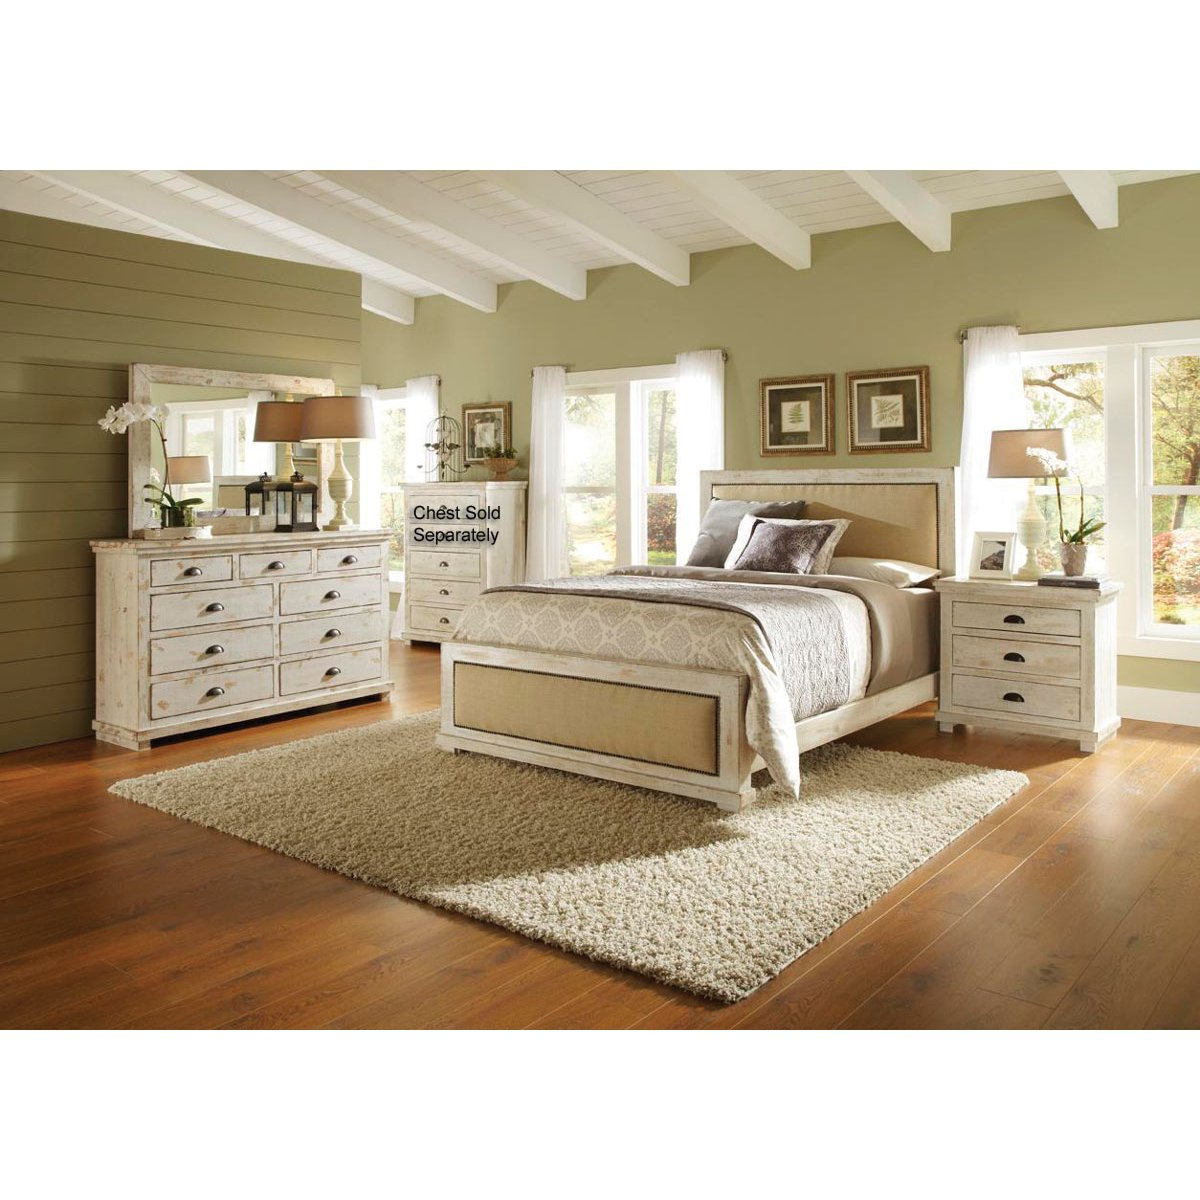 Willow 6 Piece King Bedroom Set. King size bed  king size bed frame   king bedroom sets   RC Willey